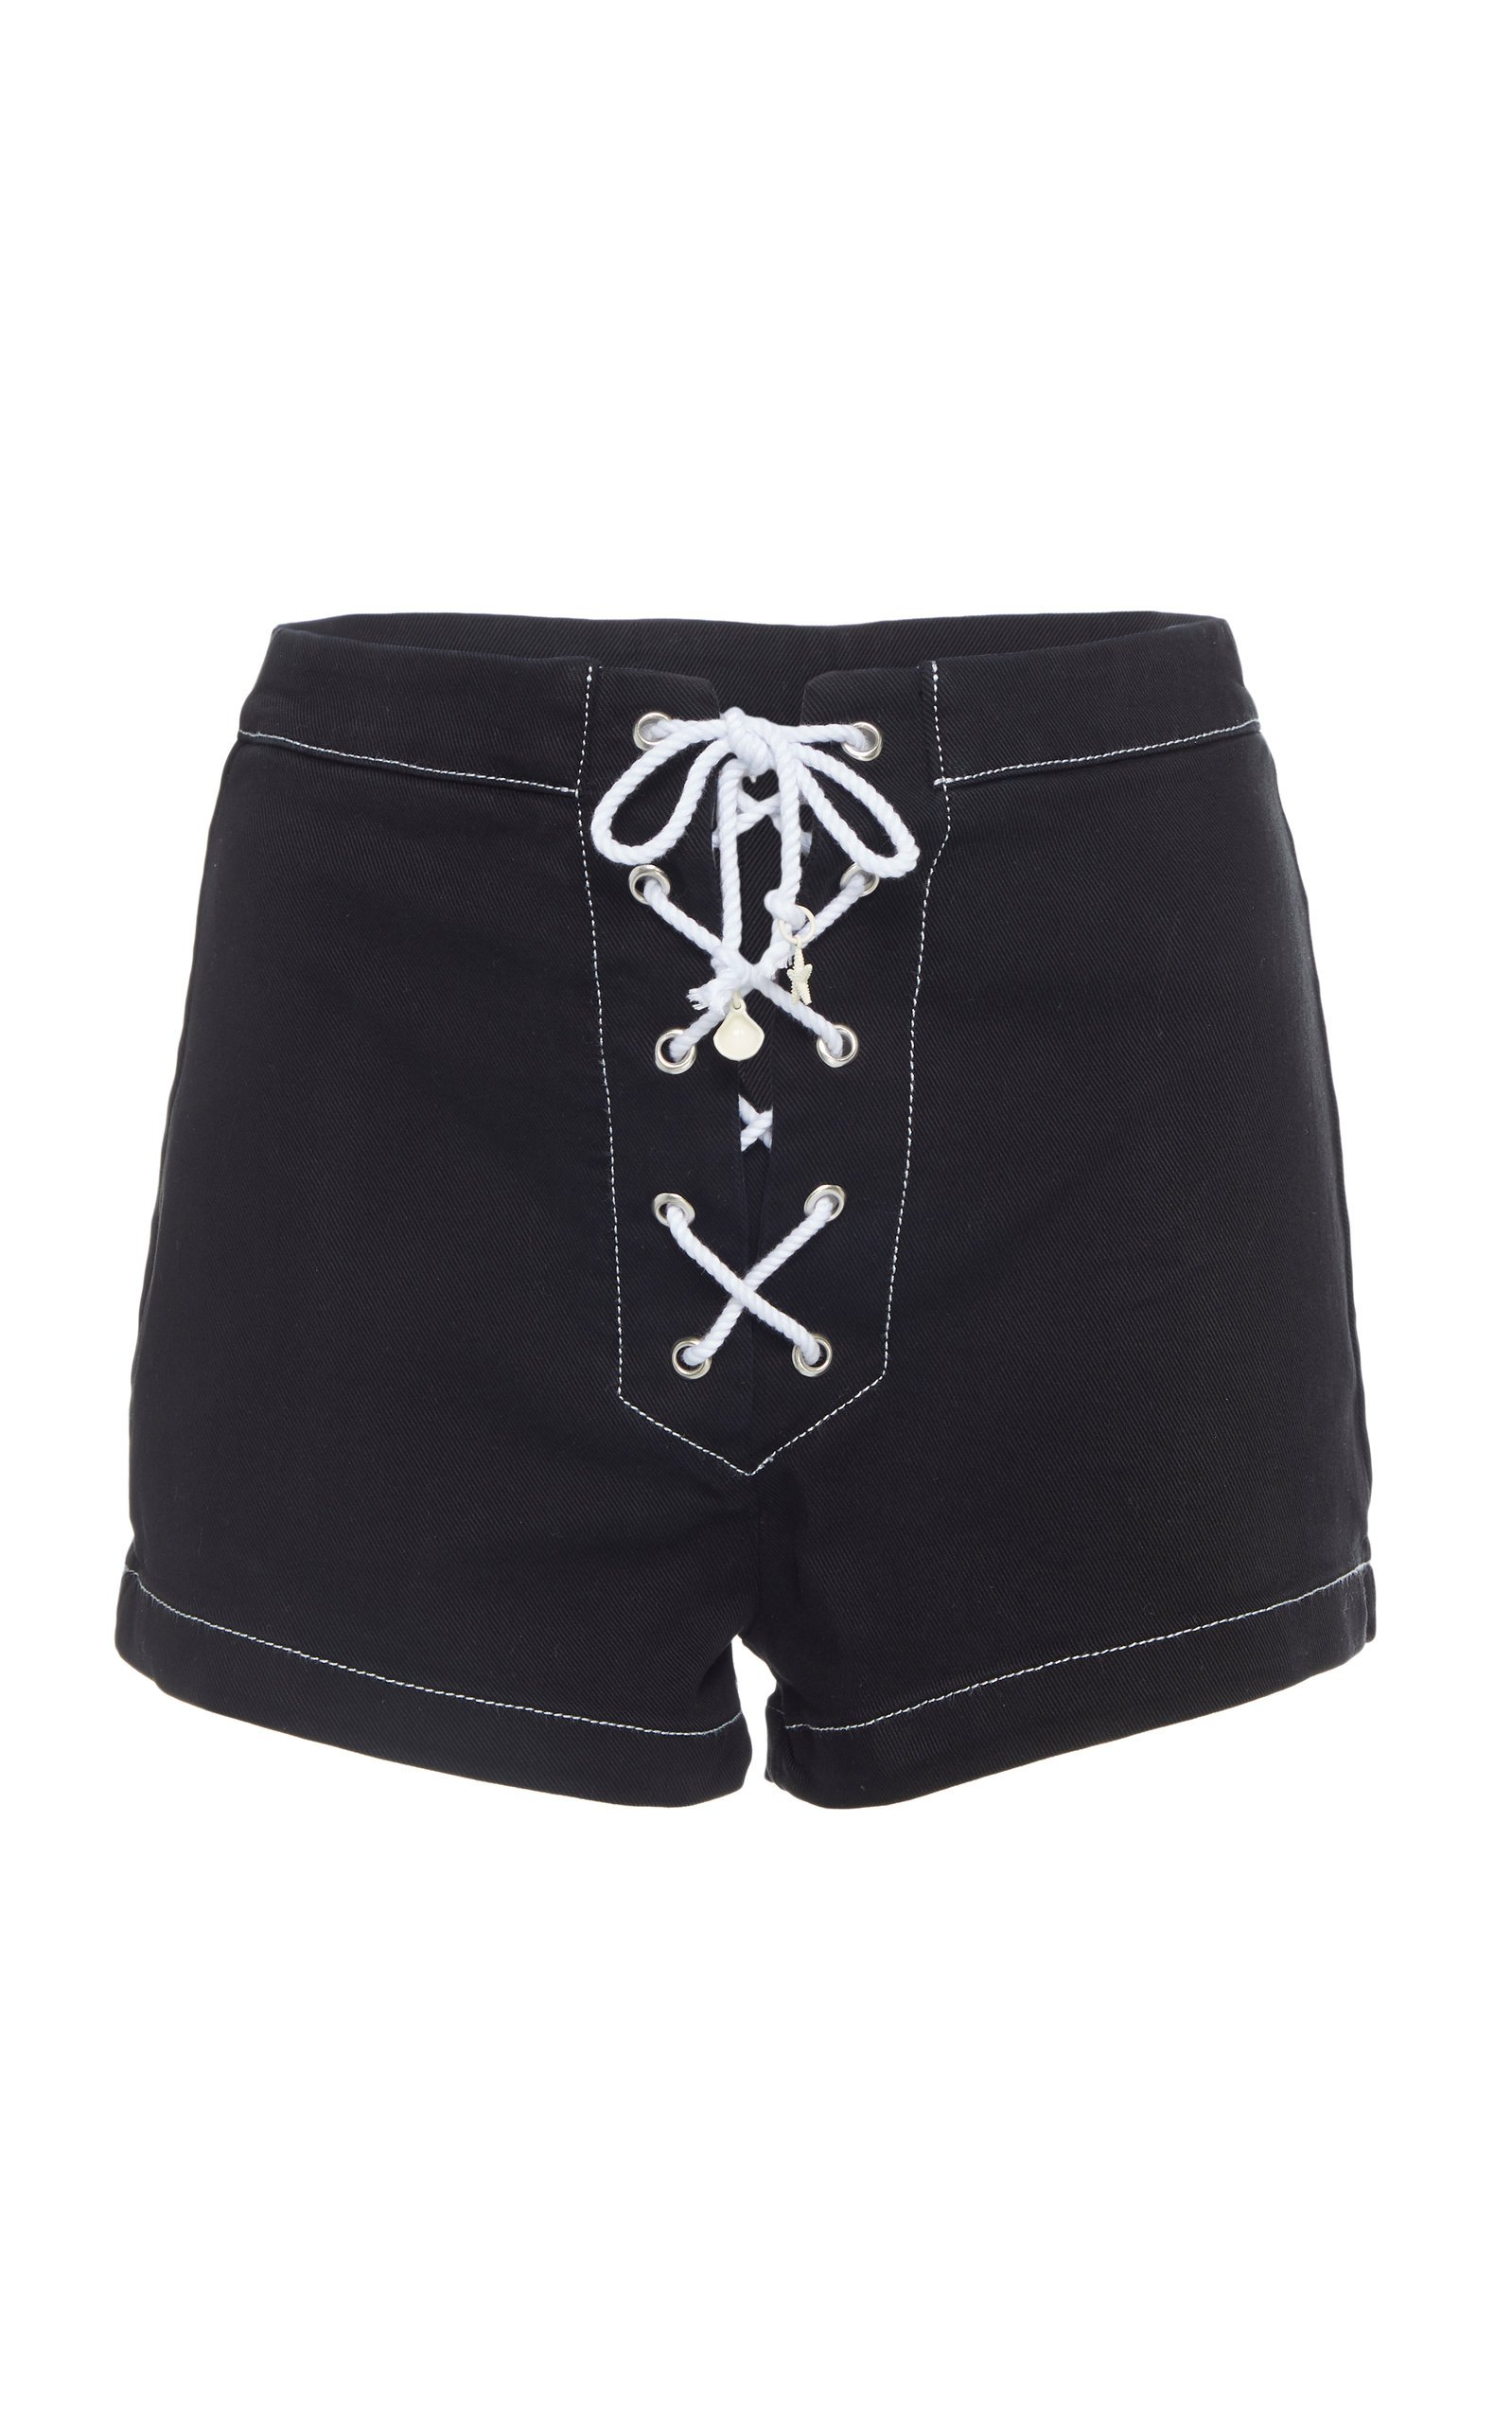 Solid & Striped Dark sailor denim shorts Size: 29